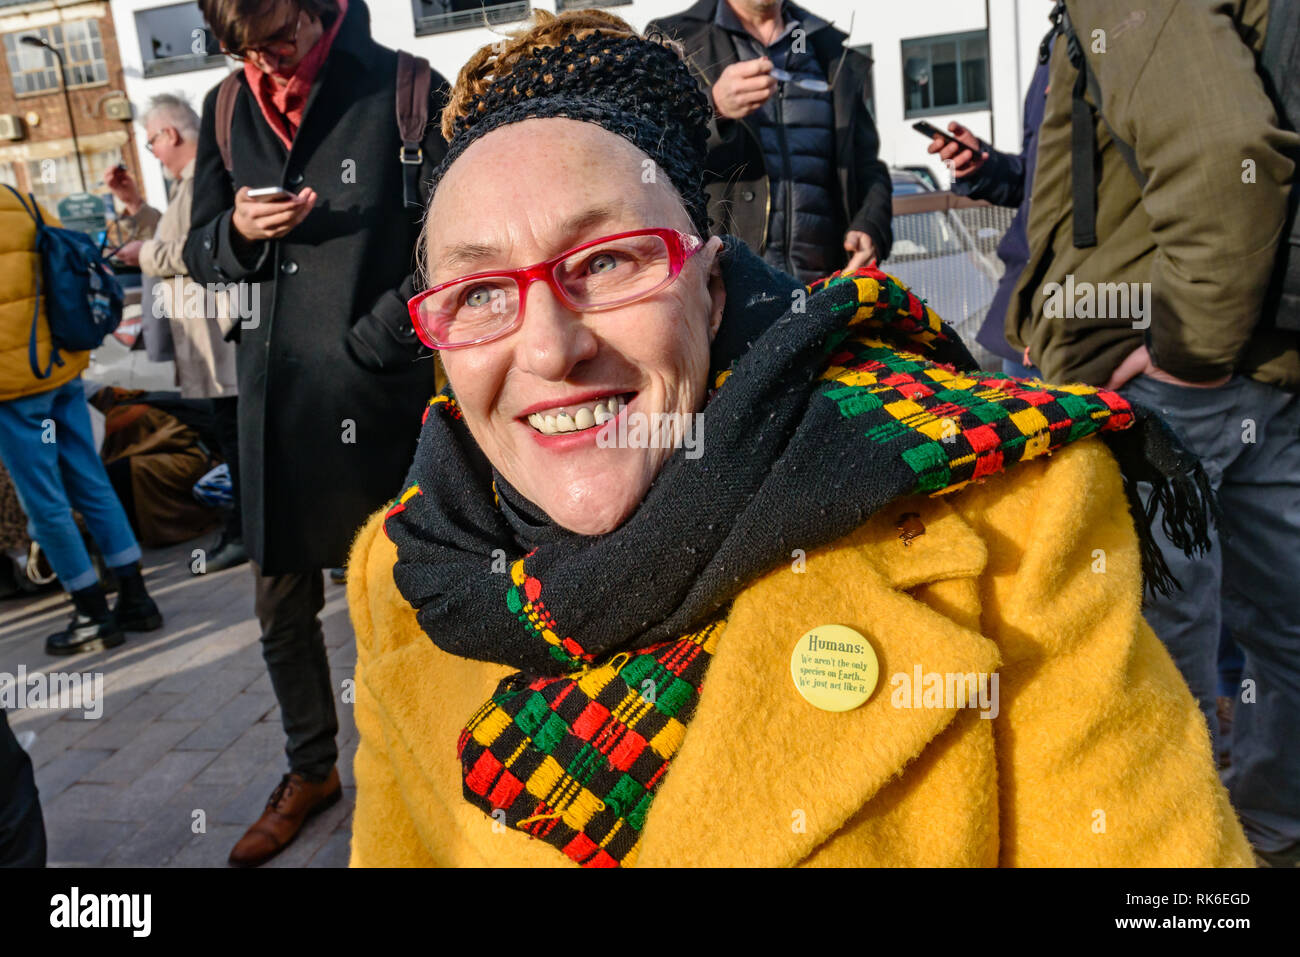 London, UK. 9th February 2019. A woman at the Extinction Rebellion street party wears a bade 'Humans: We aren't the only species on Earth... We just aci like it.'  XR is in open Rebellion against the UK Government for its criminal inaction in the face of impending climate and ecological collapse and held a street party blocking the A10 Kingsland High St in Dalston for two hours with speeches, music and spoken word performances, t-shirt printing, face painting and free food, with dancing to a samba band which led them for a brief march up the road before returning to continue the protest in Gil - Stock Image